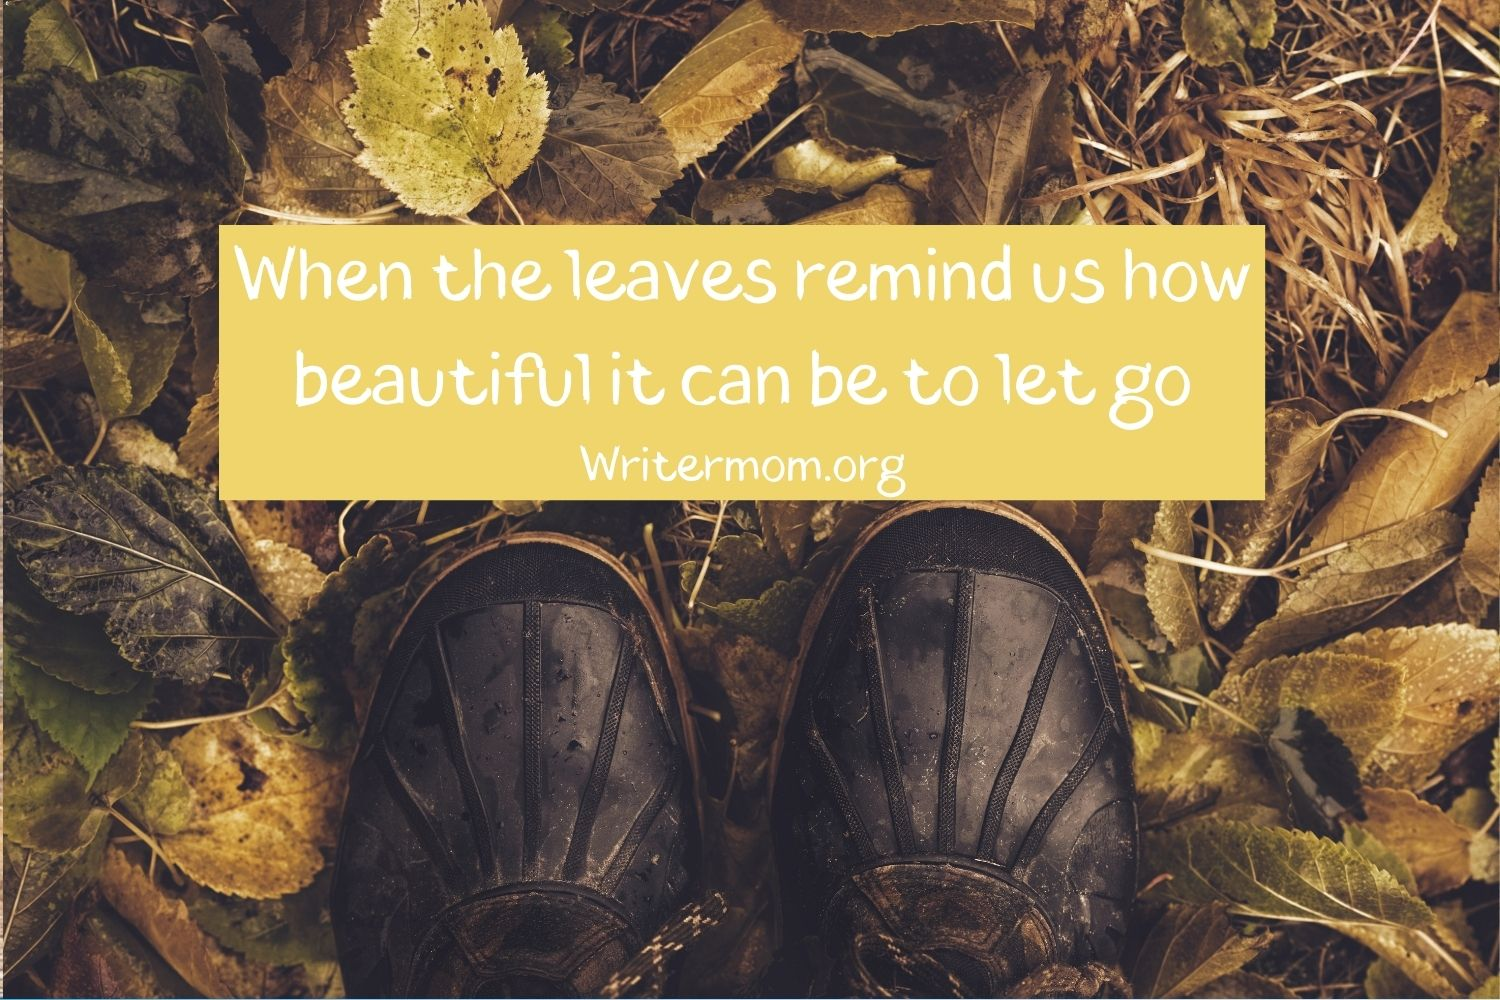 When the leaves remind us how beautiful it can be to let go